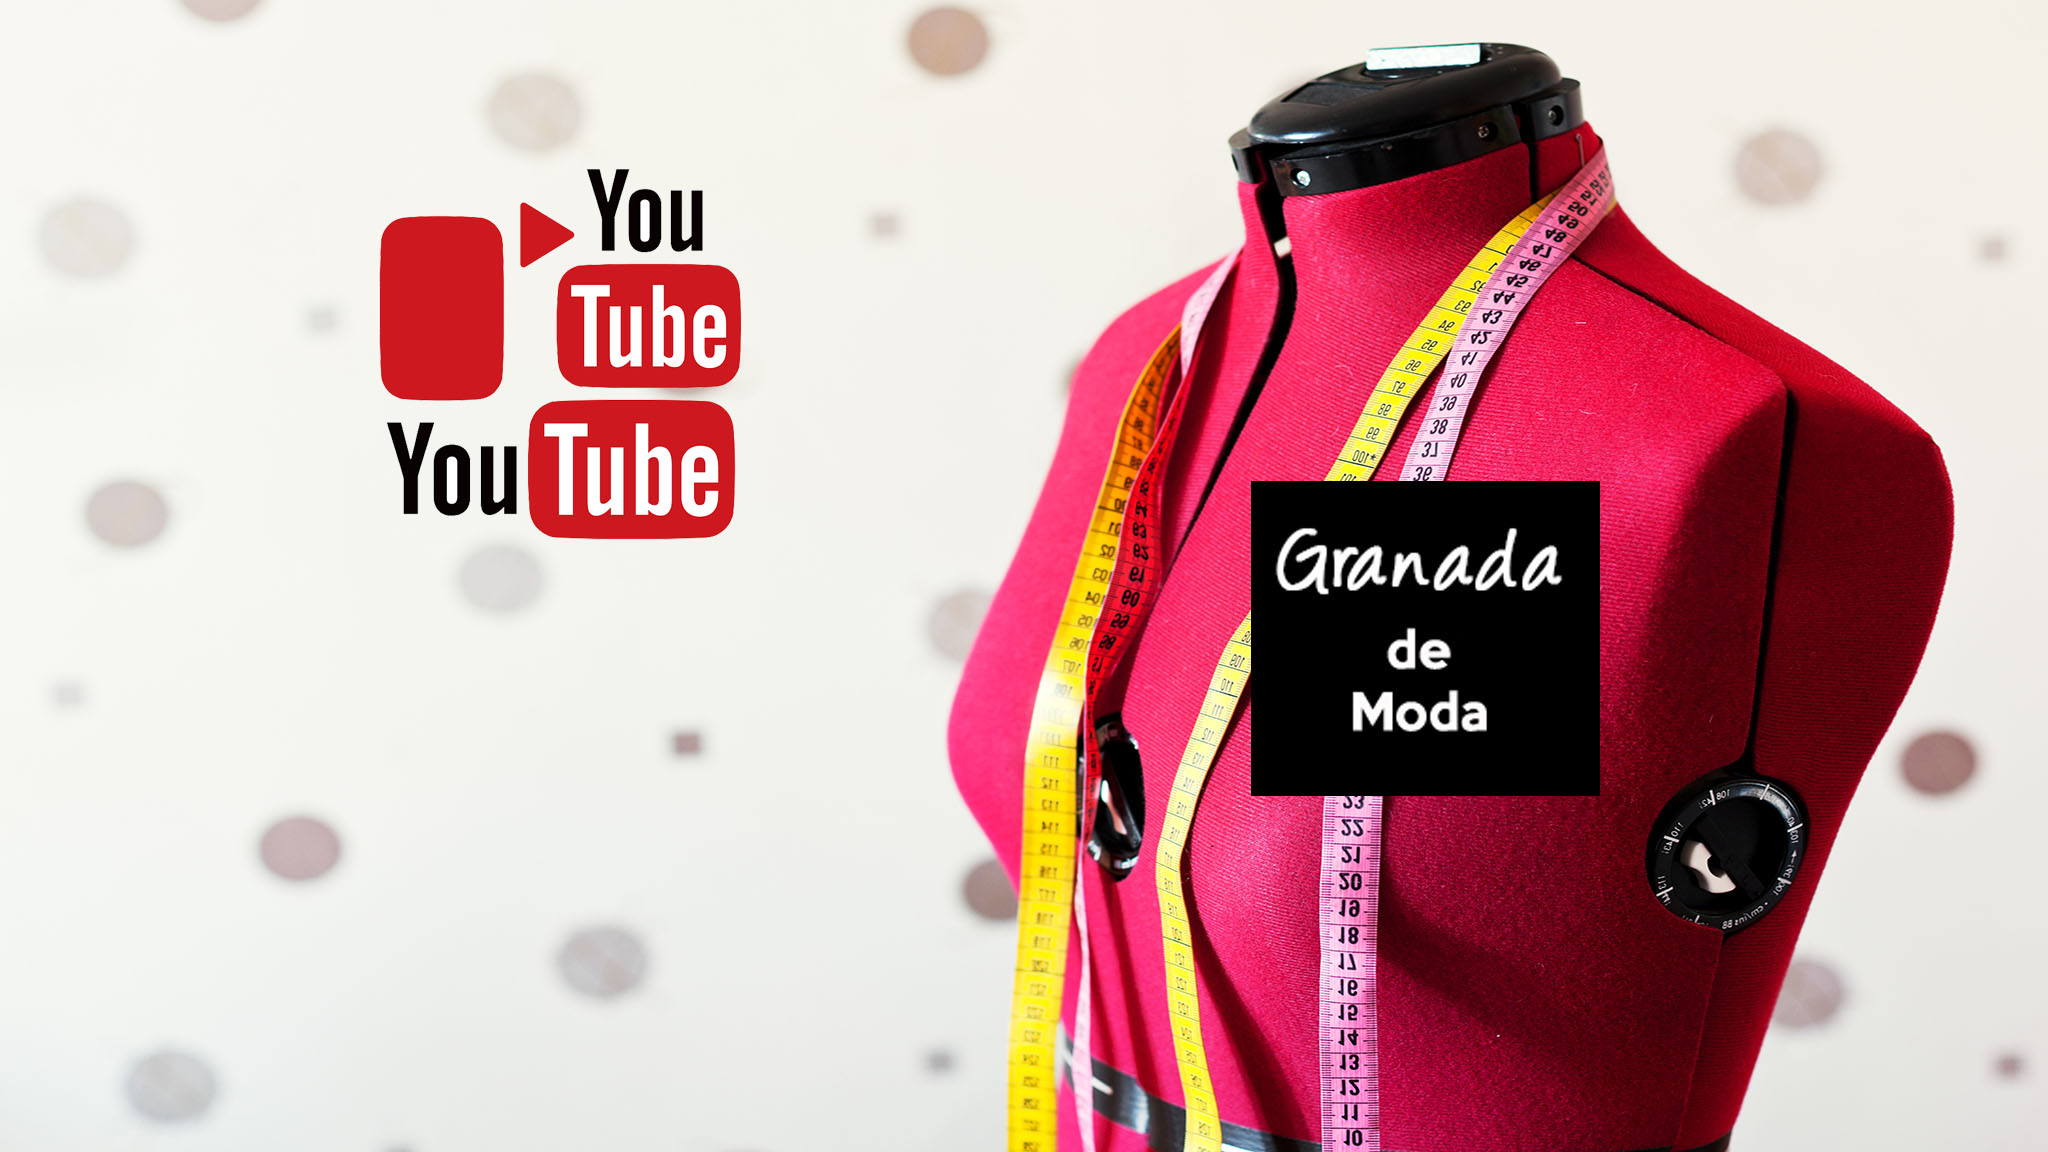 canal youtube granadademoda